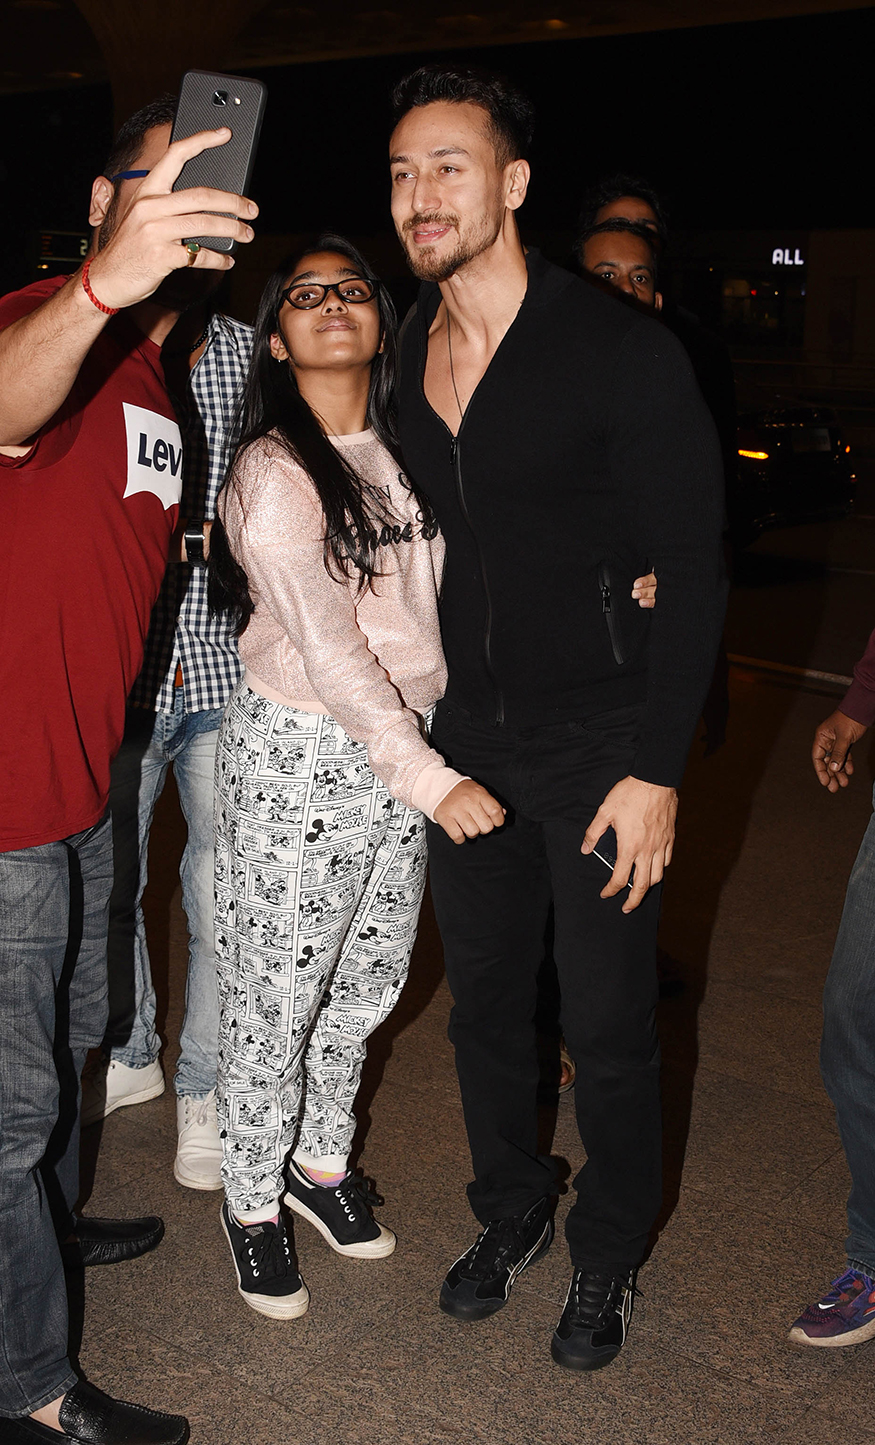 Tiger Shroff poses for a selfie with his fans at Mumbai airport while leaving for Sri Lanka. (Image: Yogen Shah)